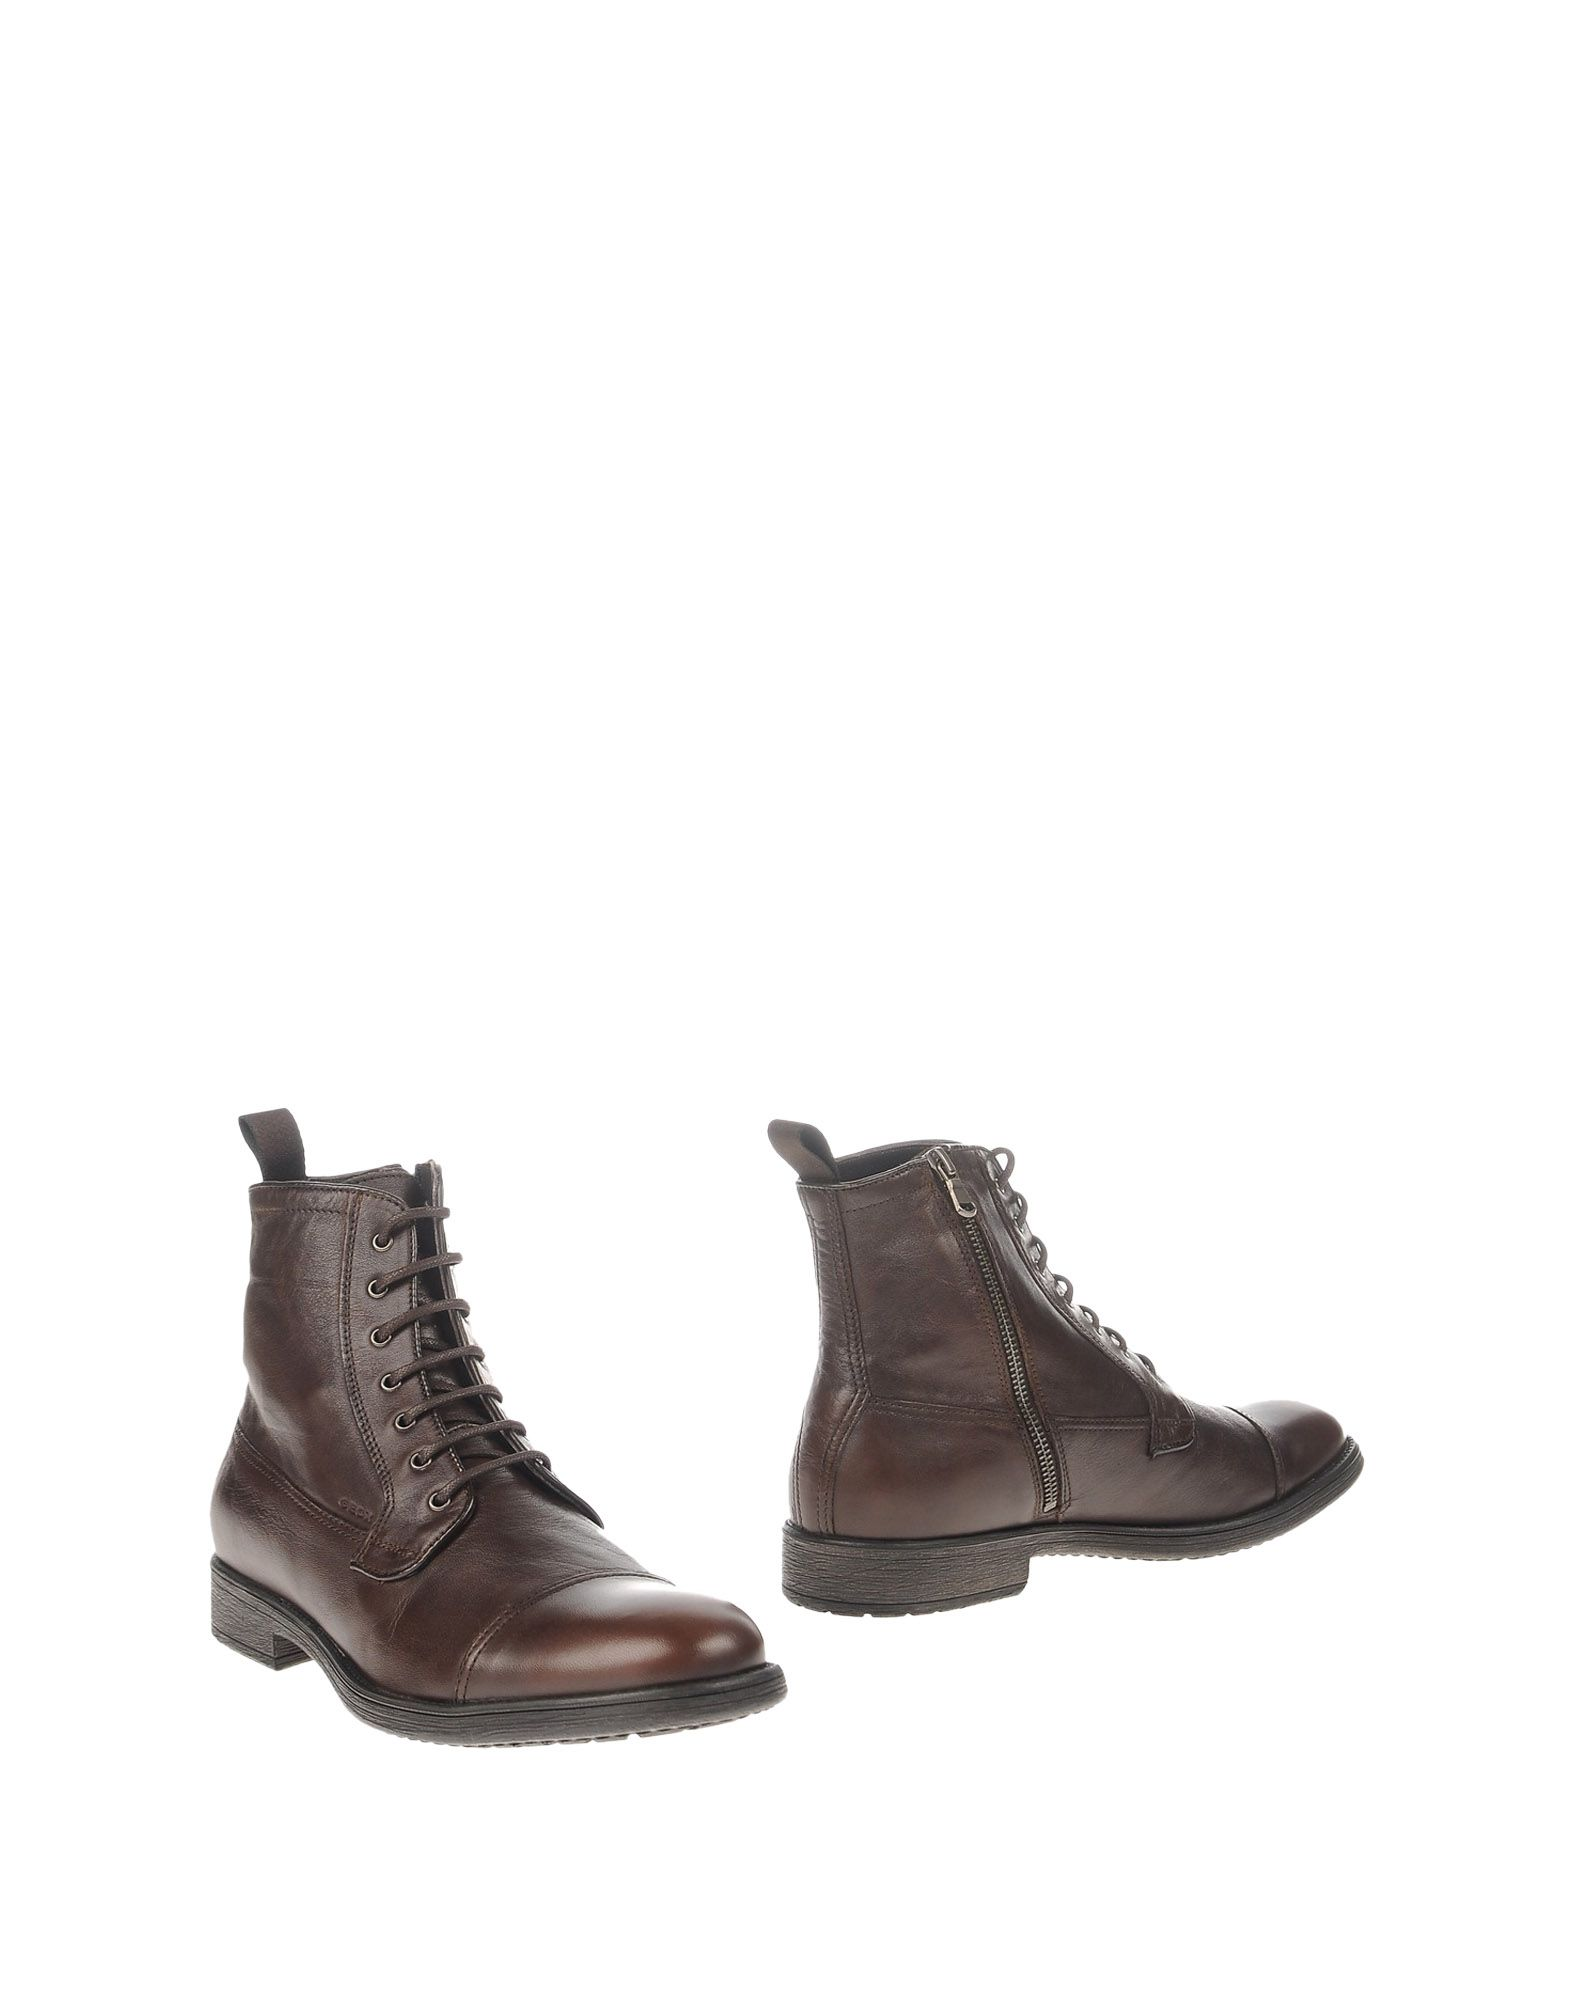 Bottine Geox Homme - Bottines Geox  Moka Super rabais